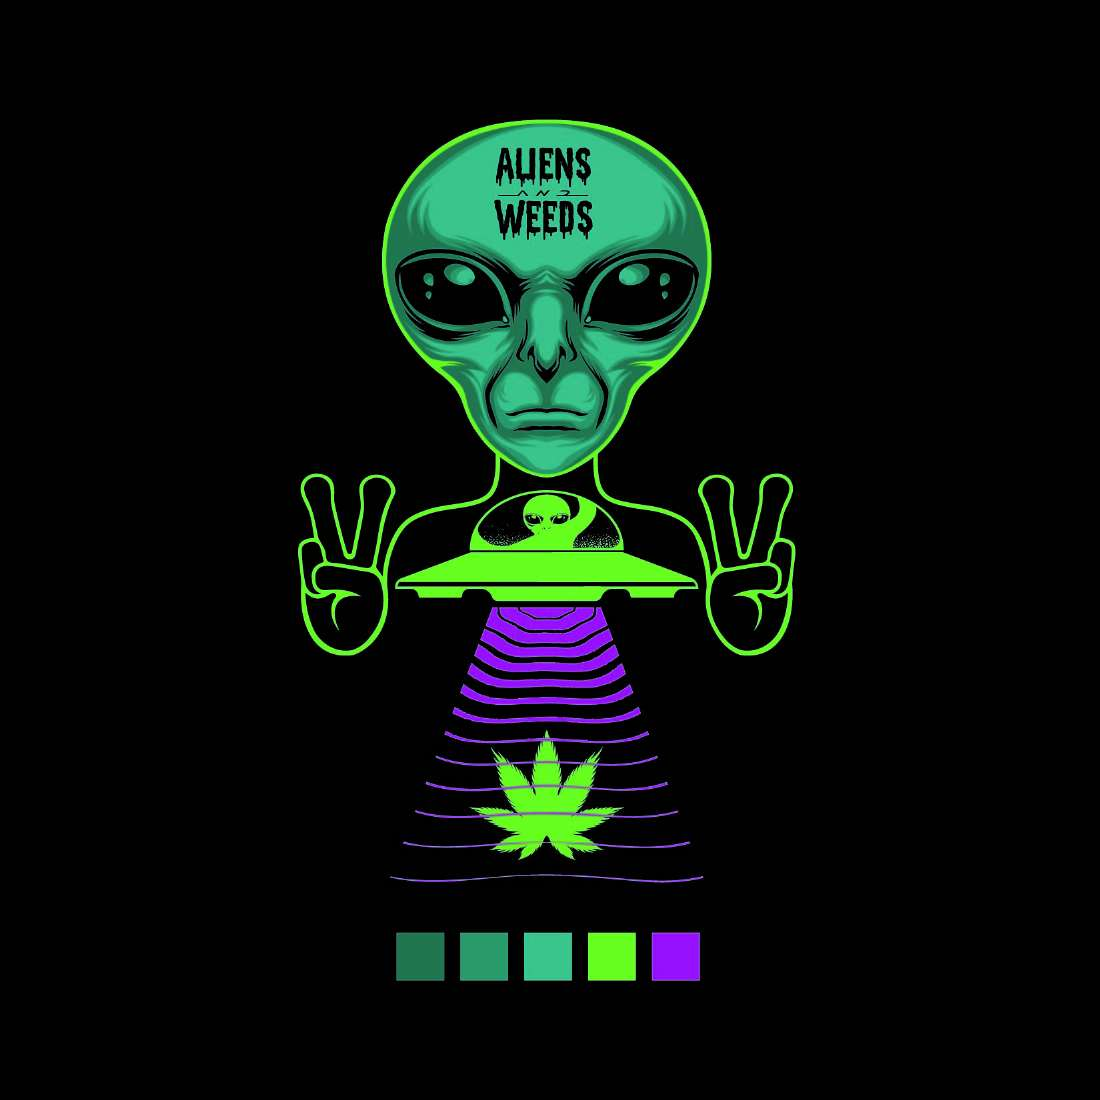 Aliens And Weeds-01_1573879695.jpg